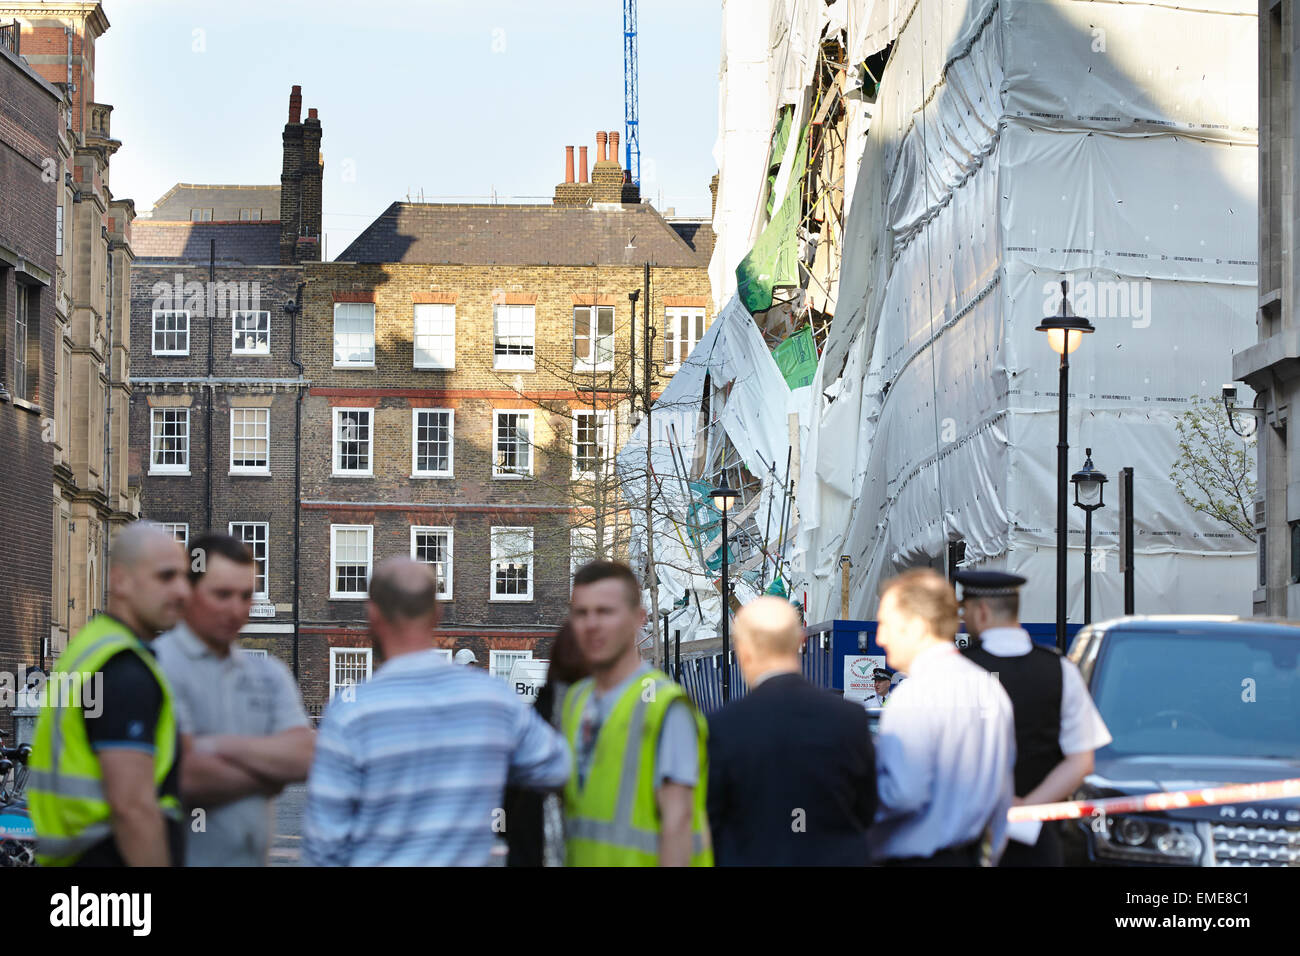 London, UK. 20th Apr, 2015. A building within the LSE complex partially collapsed today (Monday 20th April)  Debris Stock Photo